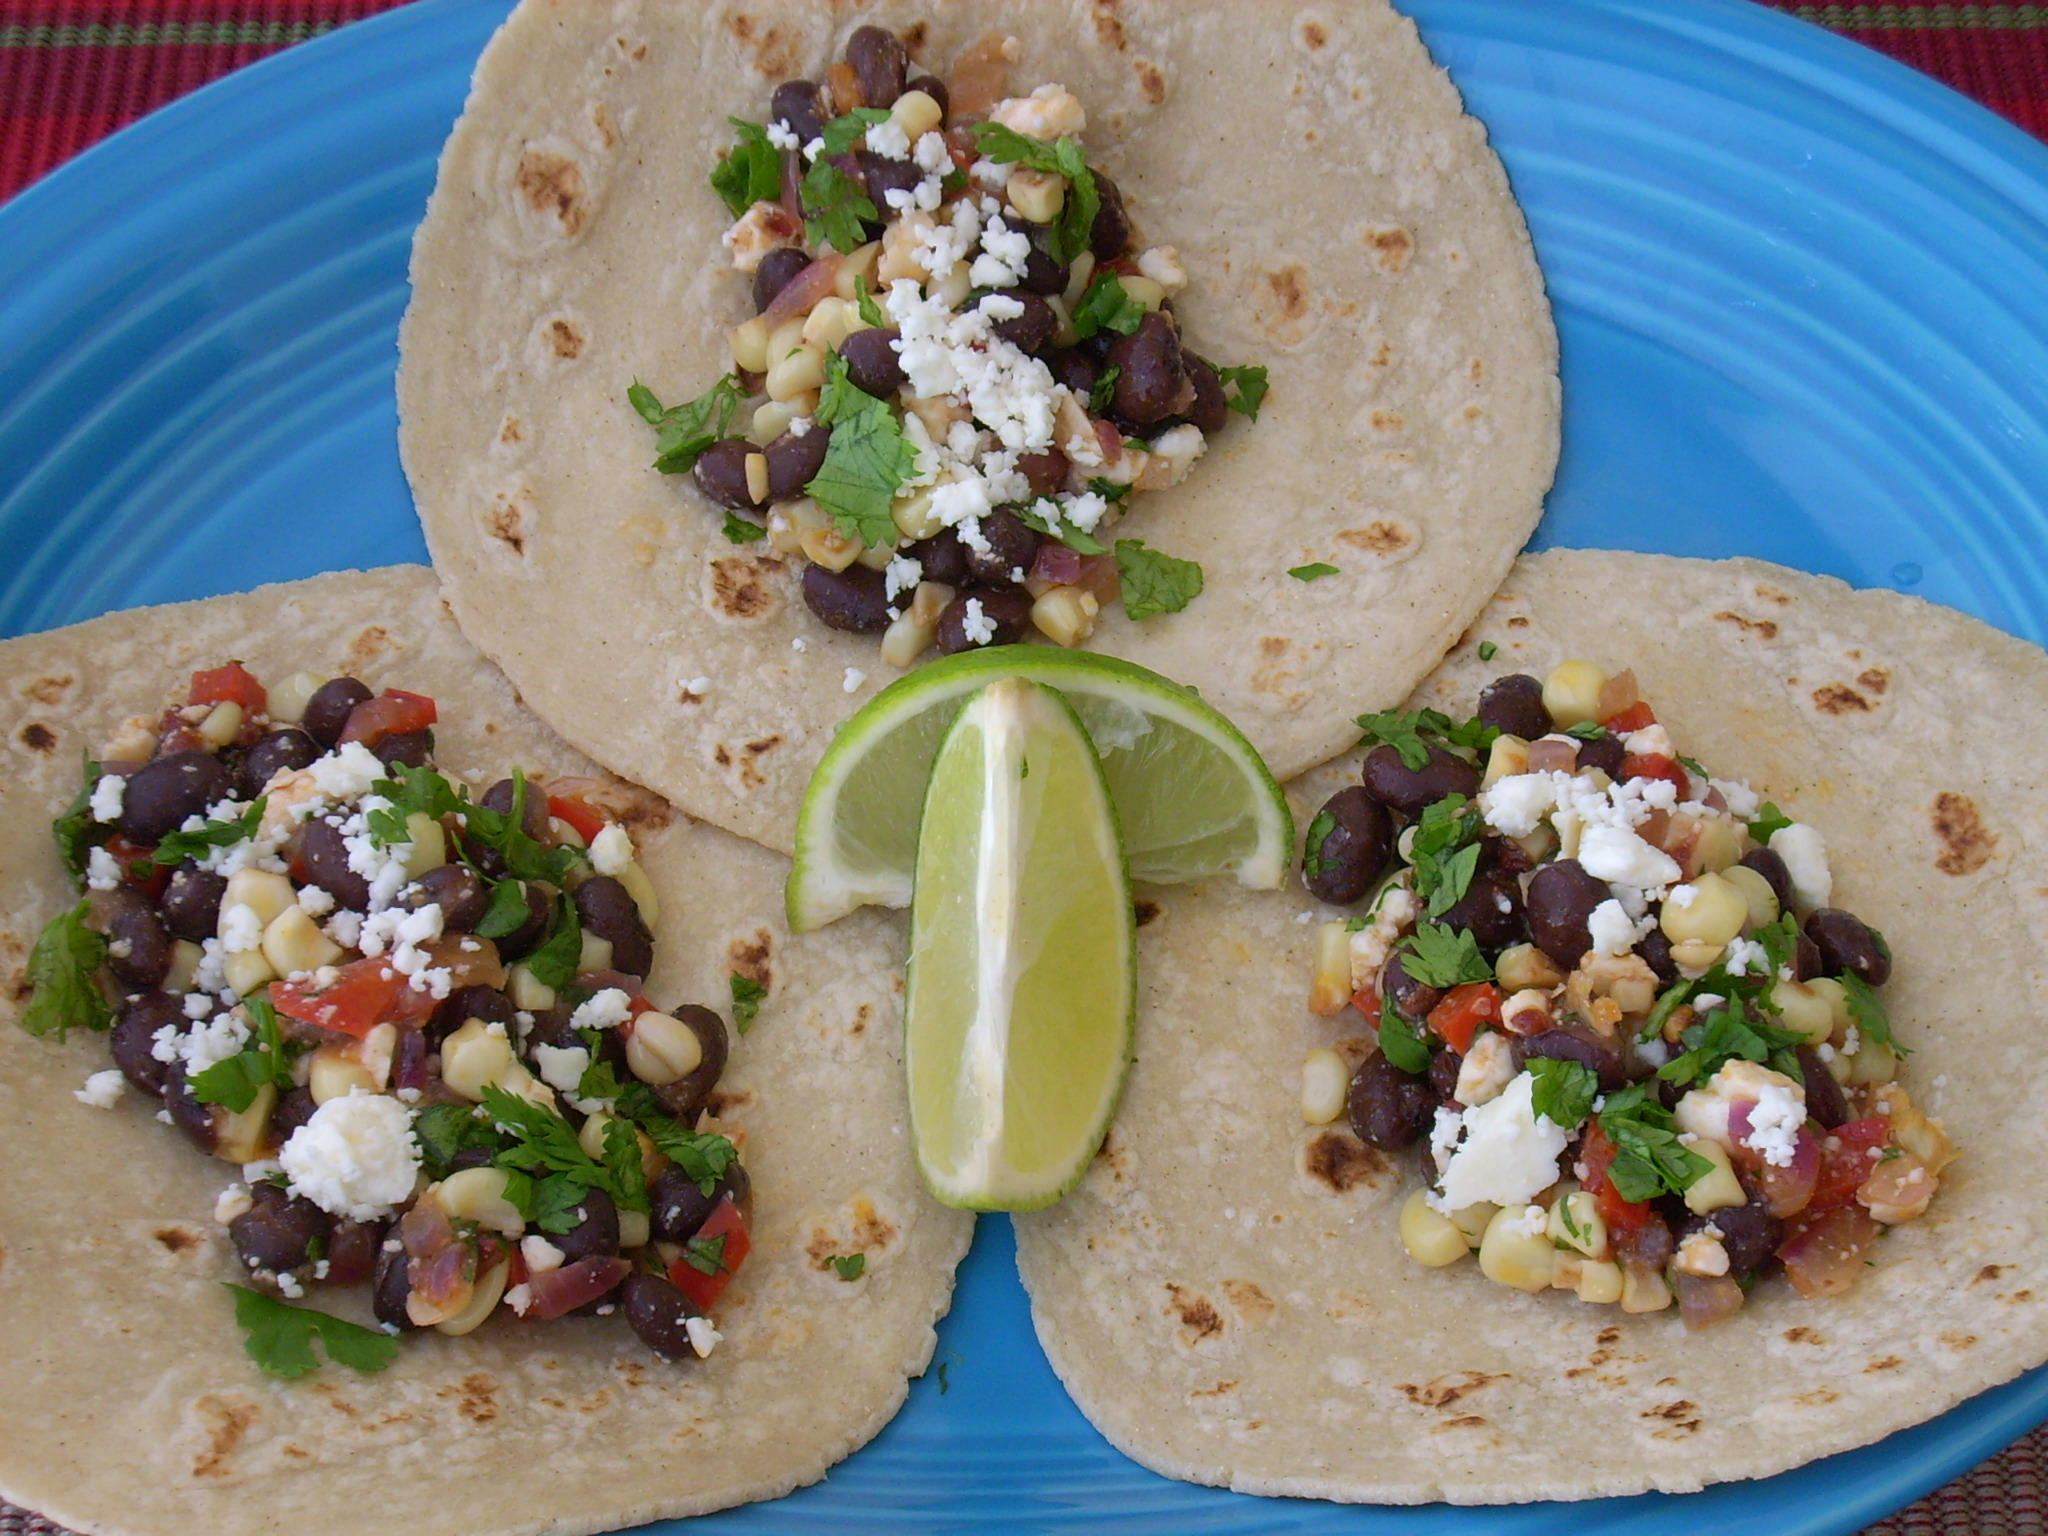 Spicy Black Bean and Corn Tacos - The Texas Peach